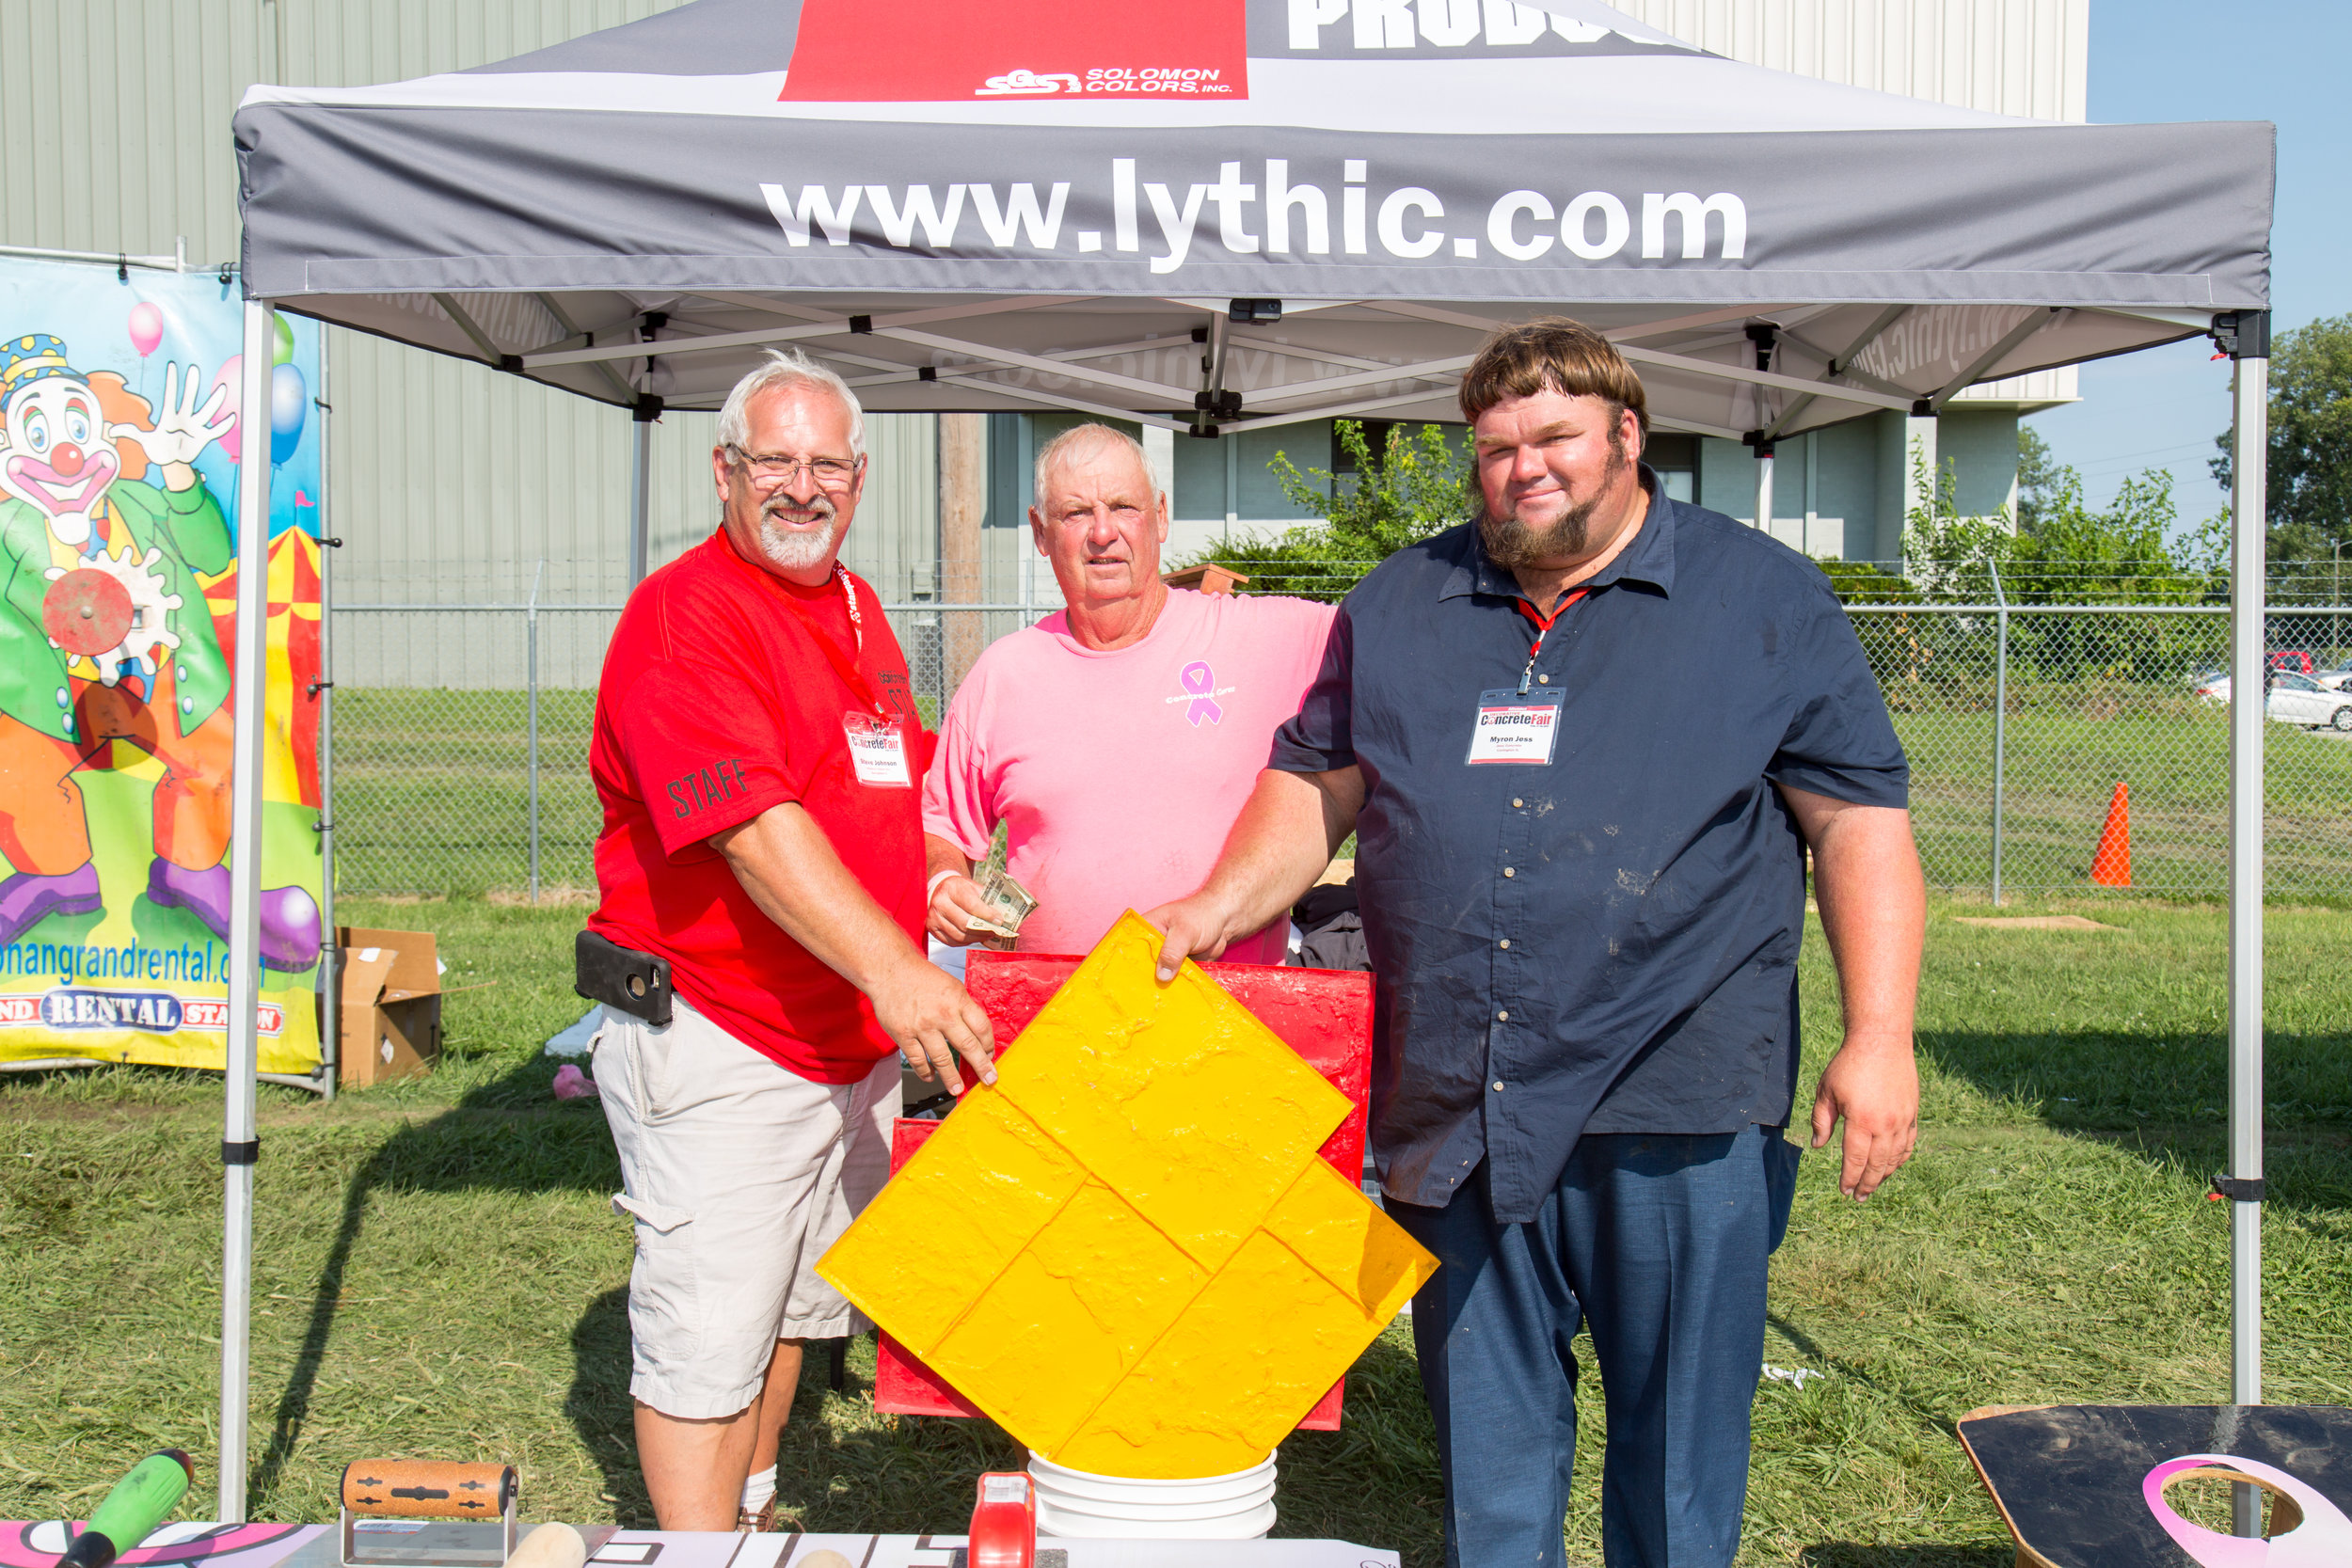 Mike Murray (Concrete Cares) and Steve Johnson (Solomon Colors) present a stamp set to the raffle winner at the 2017 Decorative Concrete Fair.